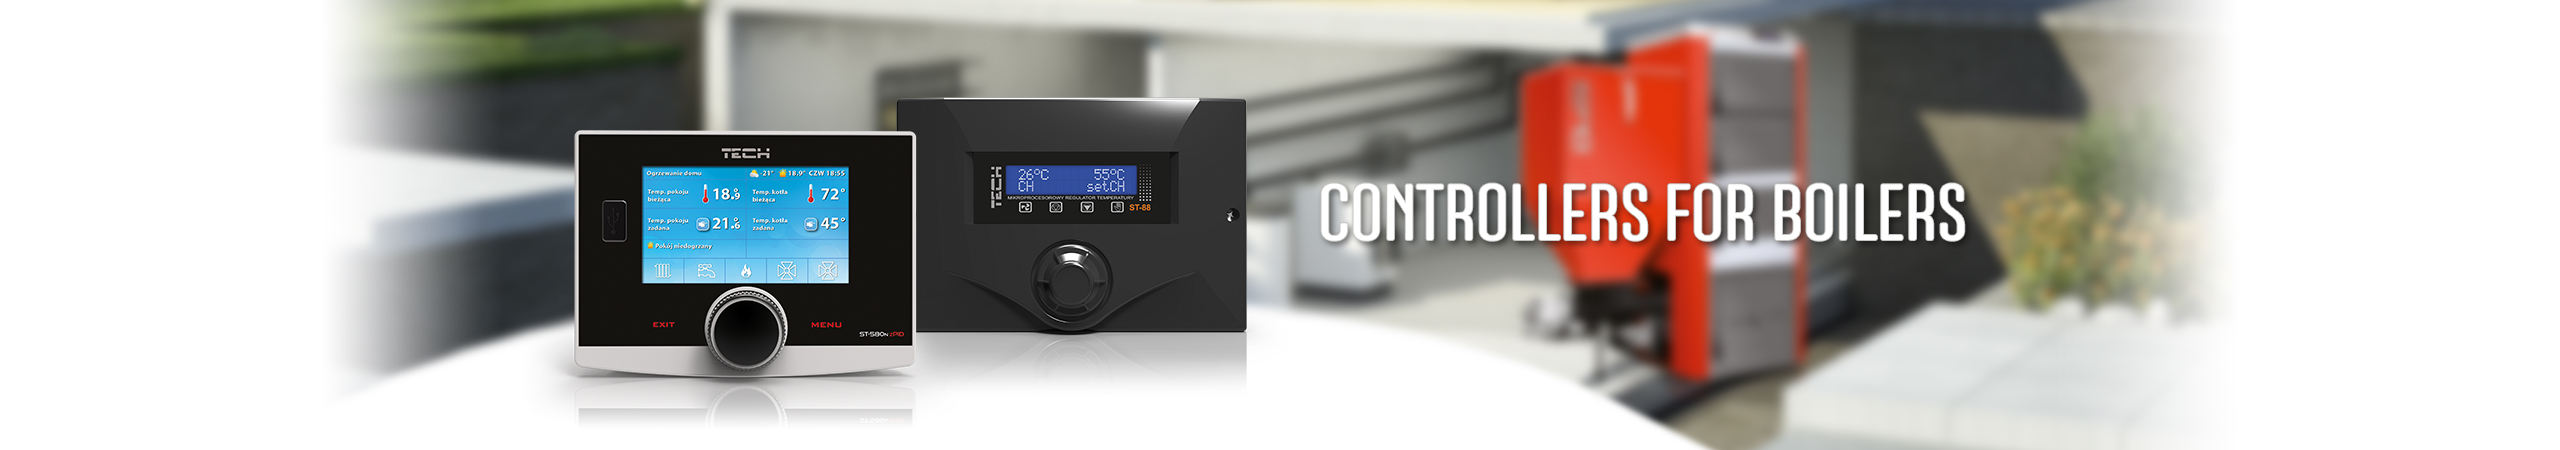 Controllers for boilers, boiler thermostat, central heating controls - TECH Controllers - TECH Sterowniki